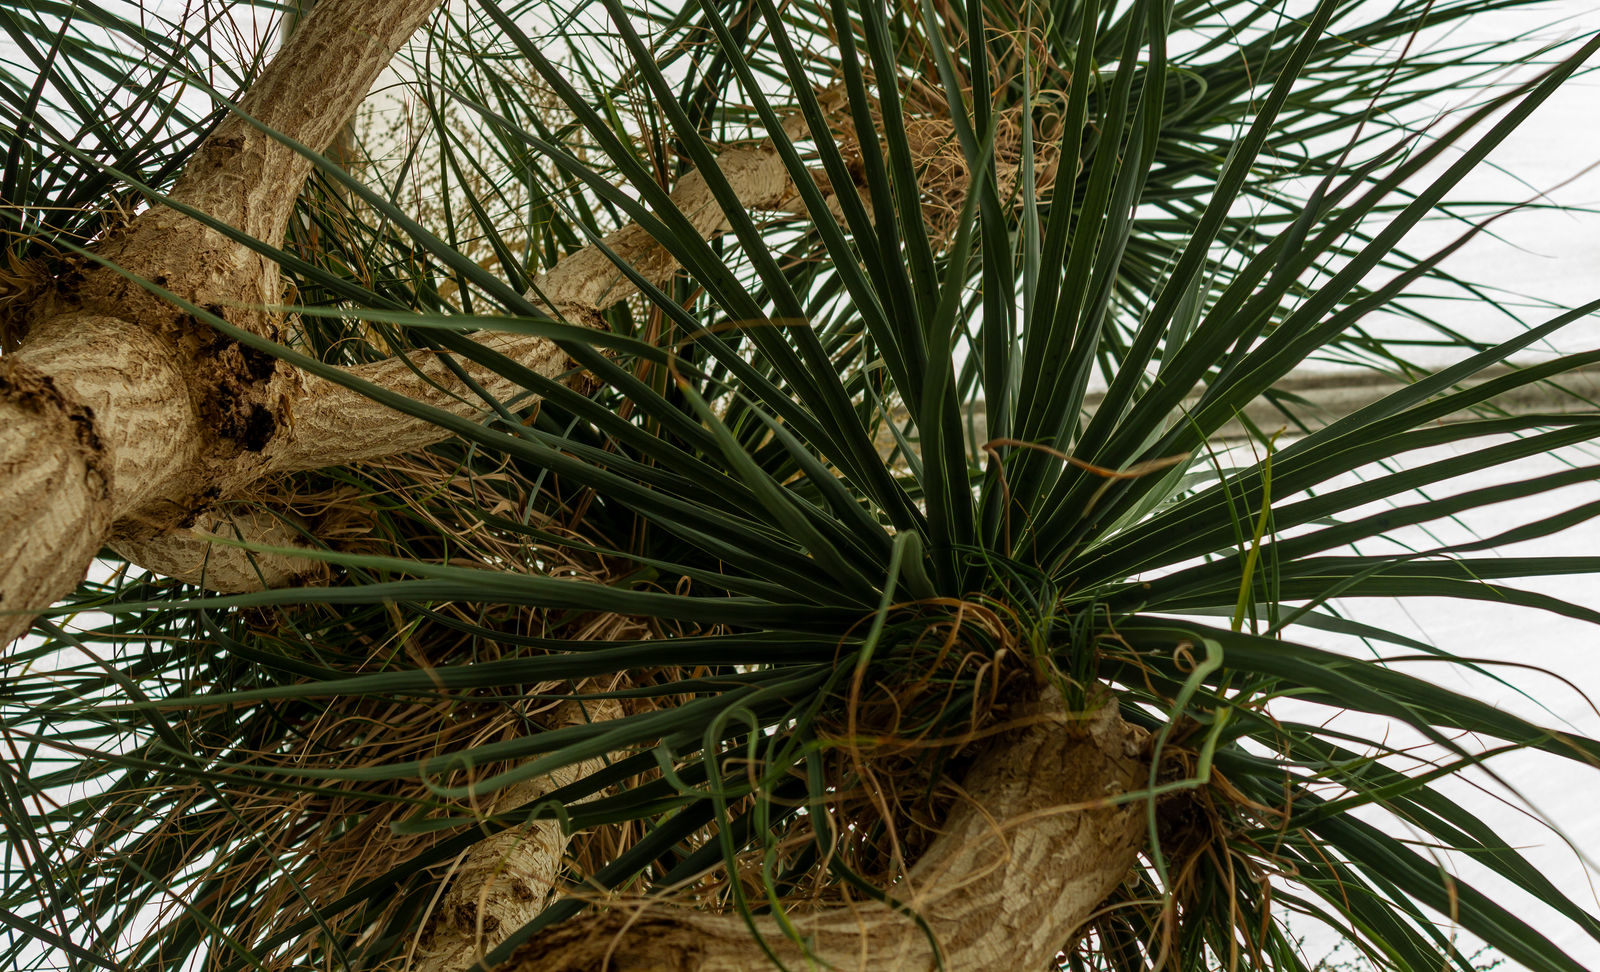 Ponytail Palm by AaronMk